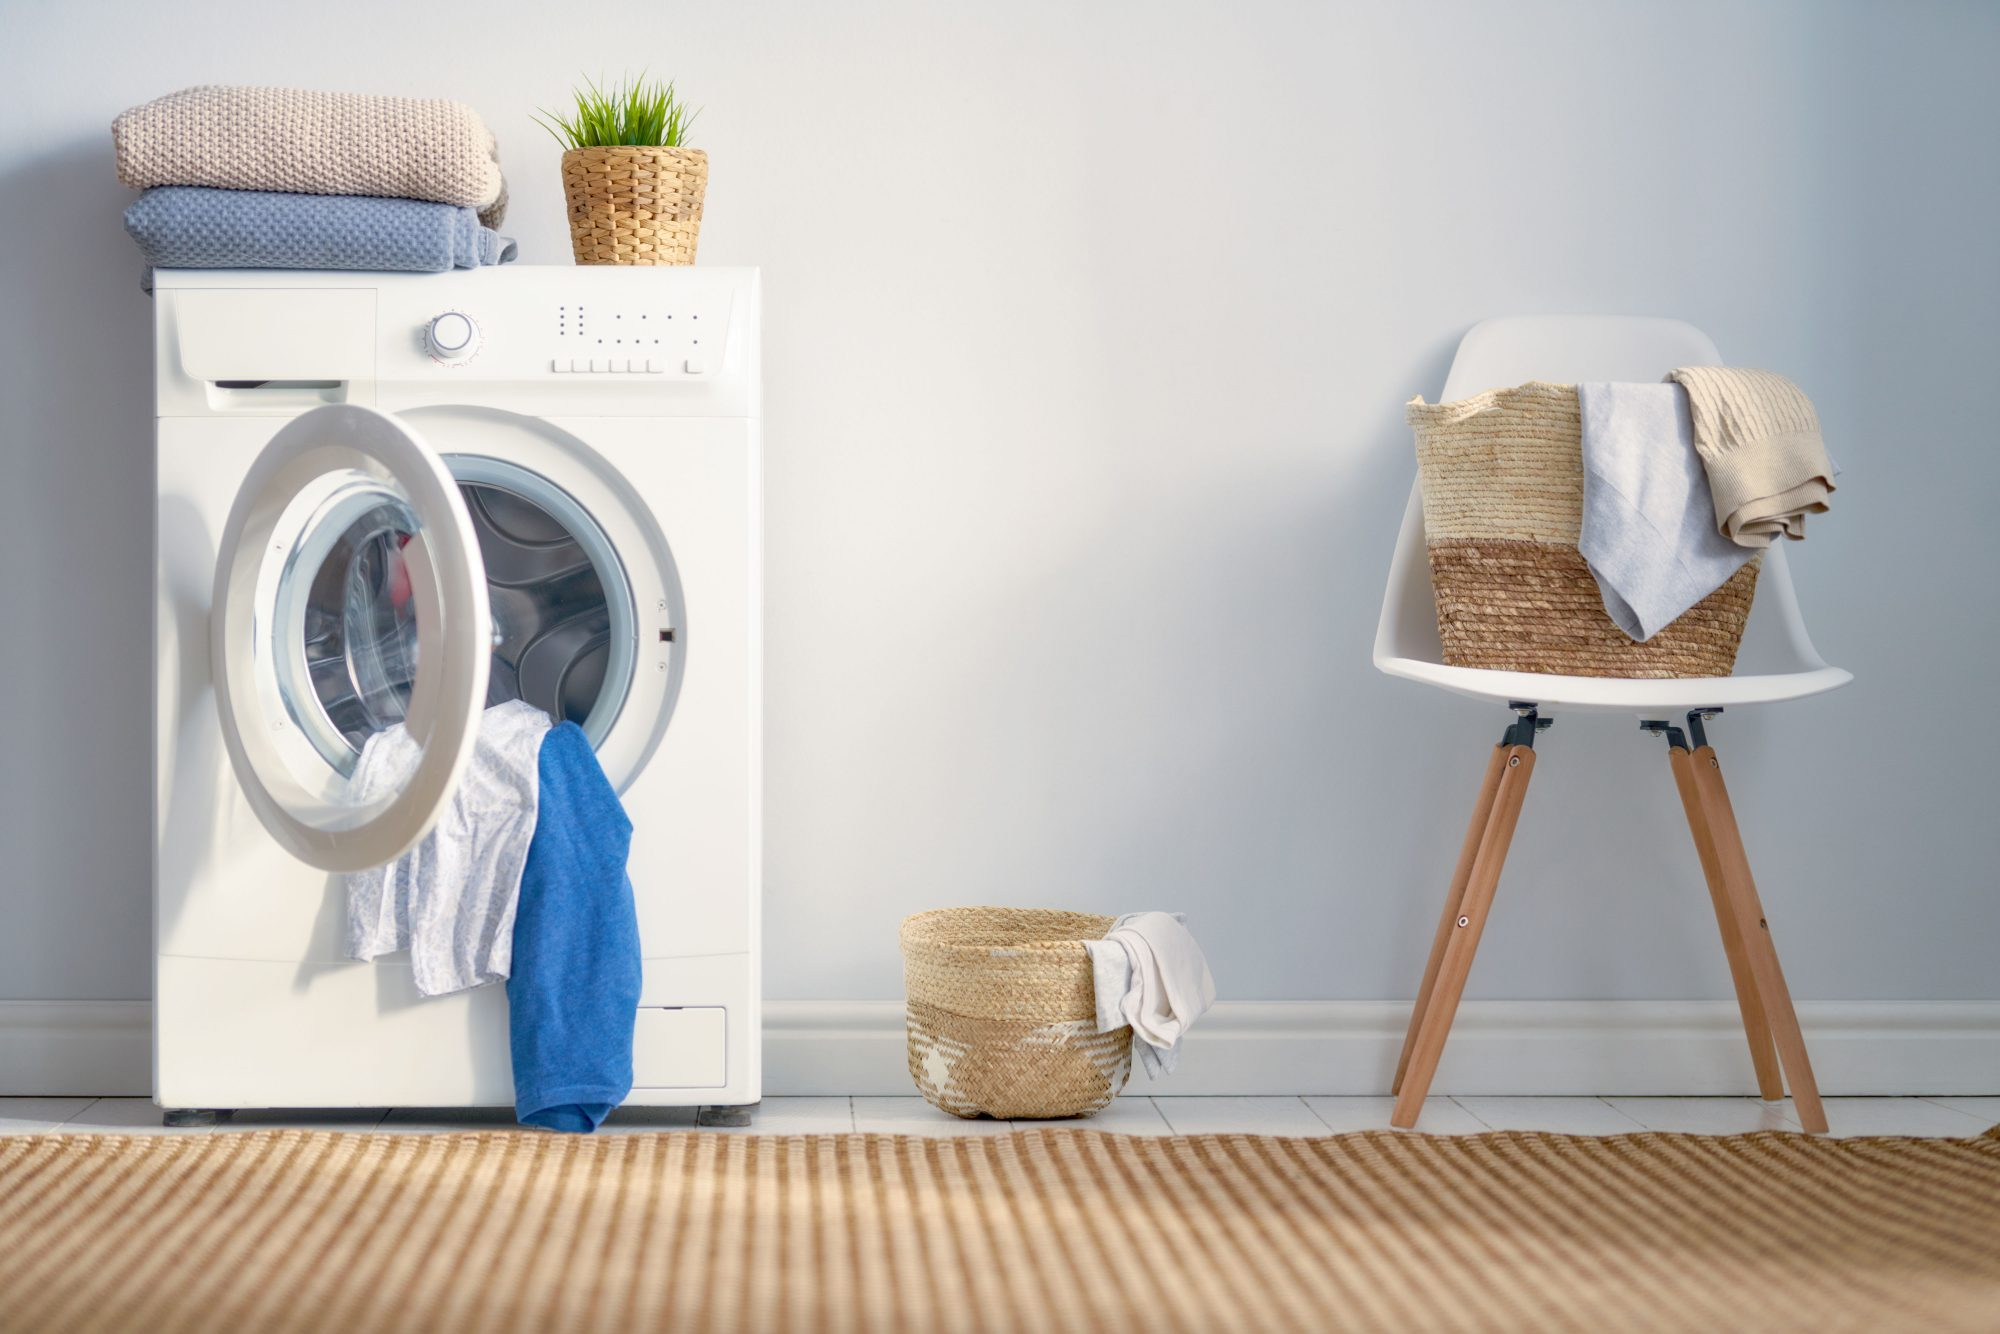 open washing machine with clothes